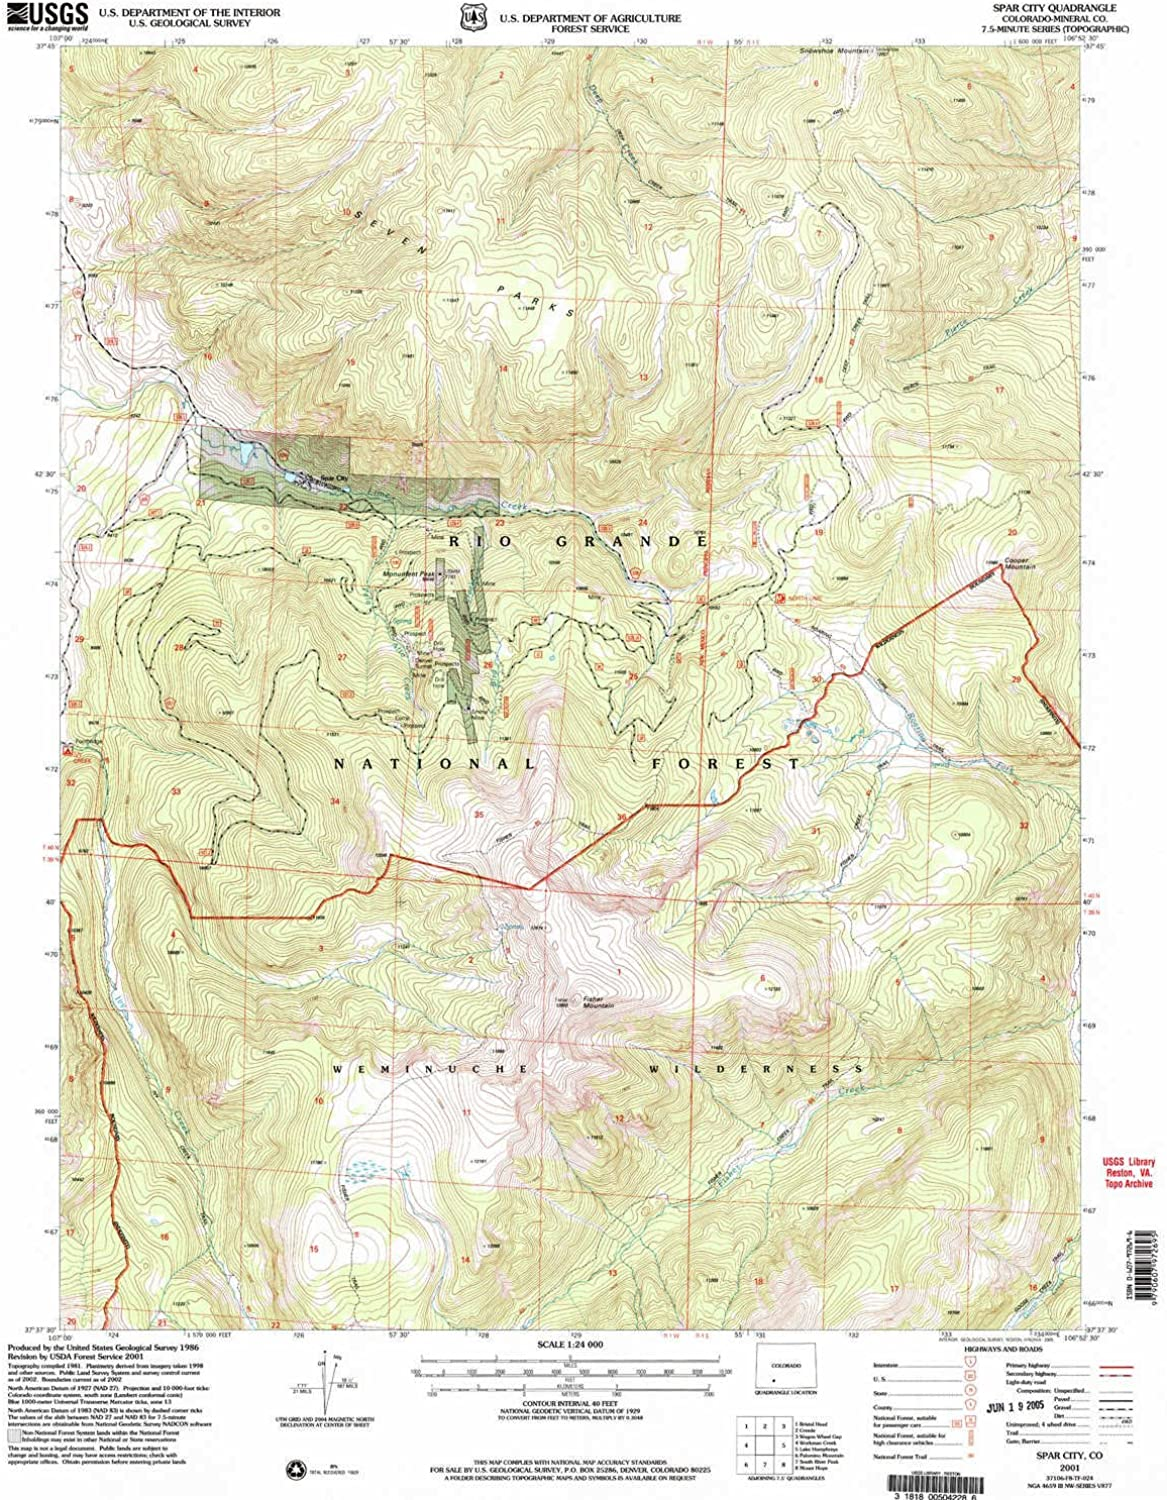 Spar City CO topo map, 1 24000 Scale, 7.5 X 7.5 Minute, Historical, 2001, Updated 2005, 26.7 x 22.1 in